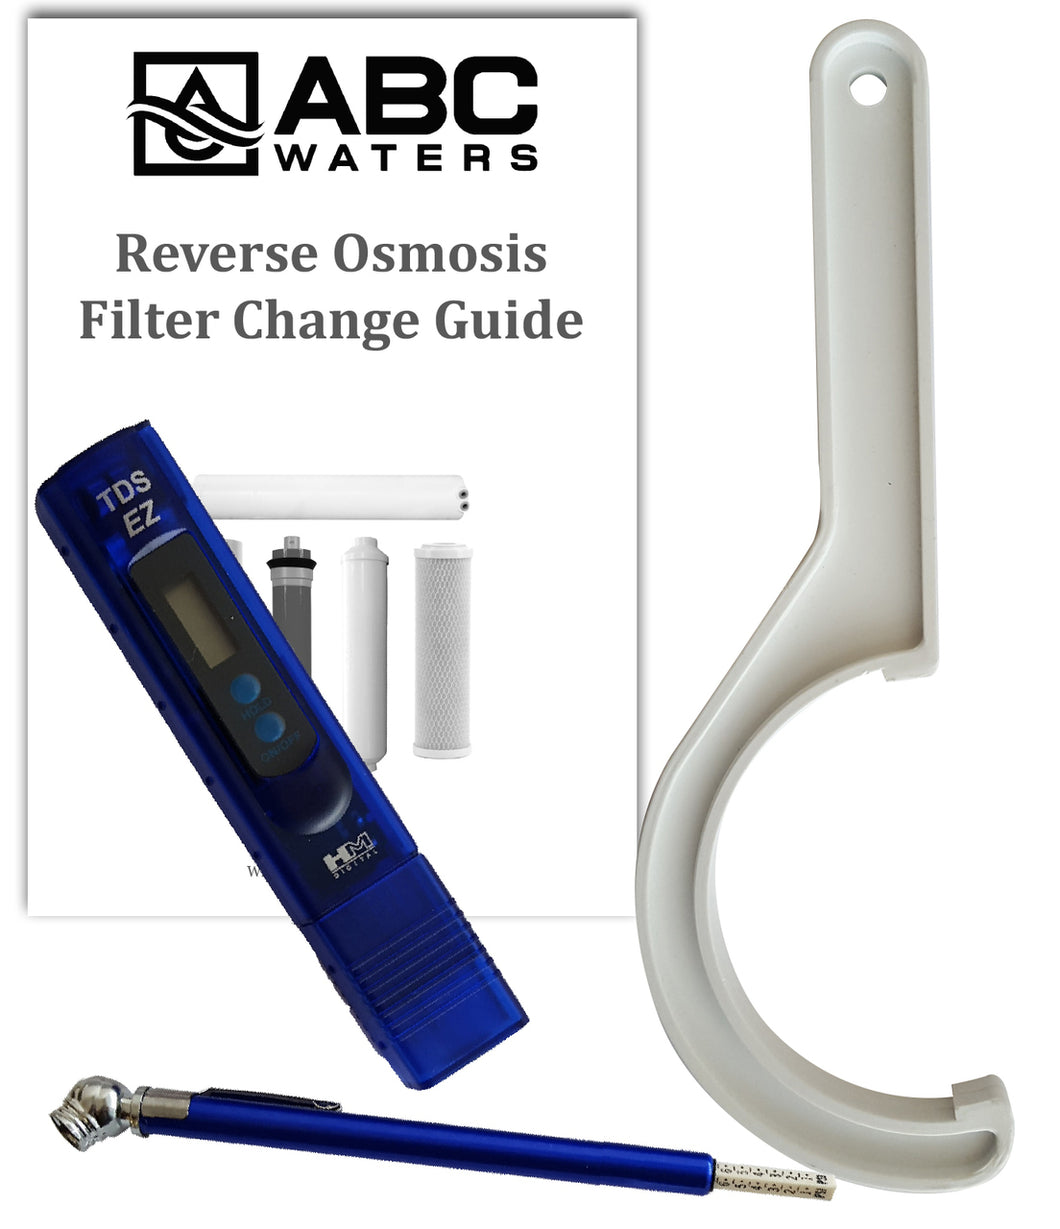 Ultima Reverse Osmosis Filter Change Tool Kit